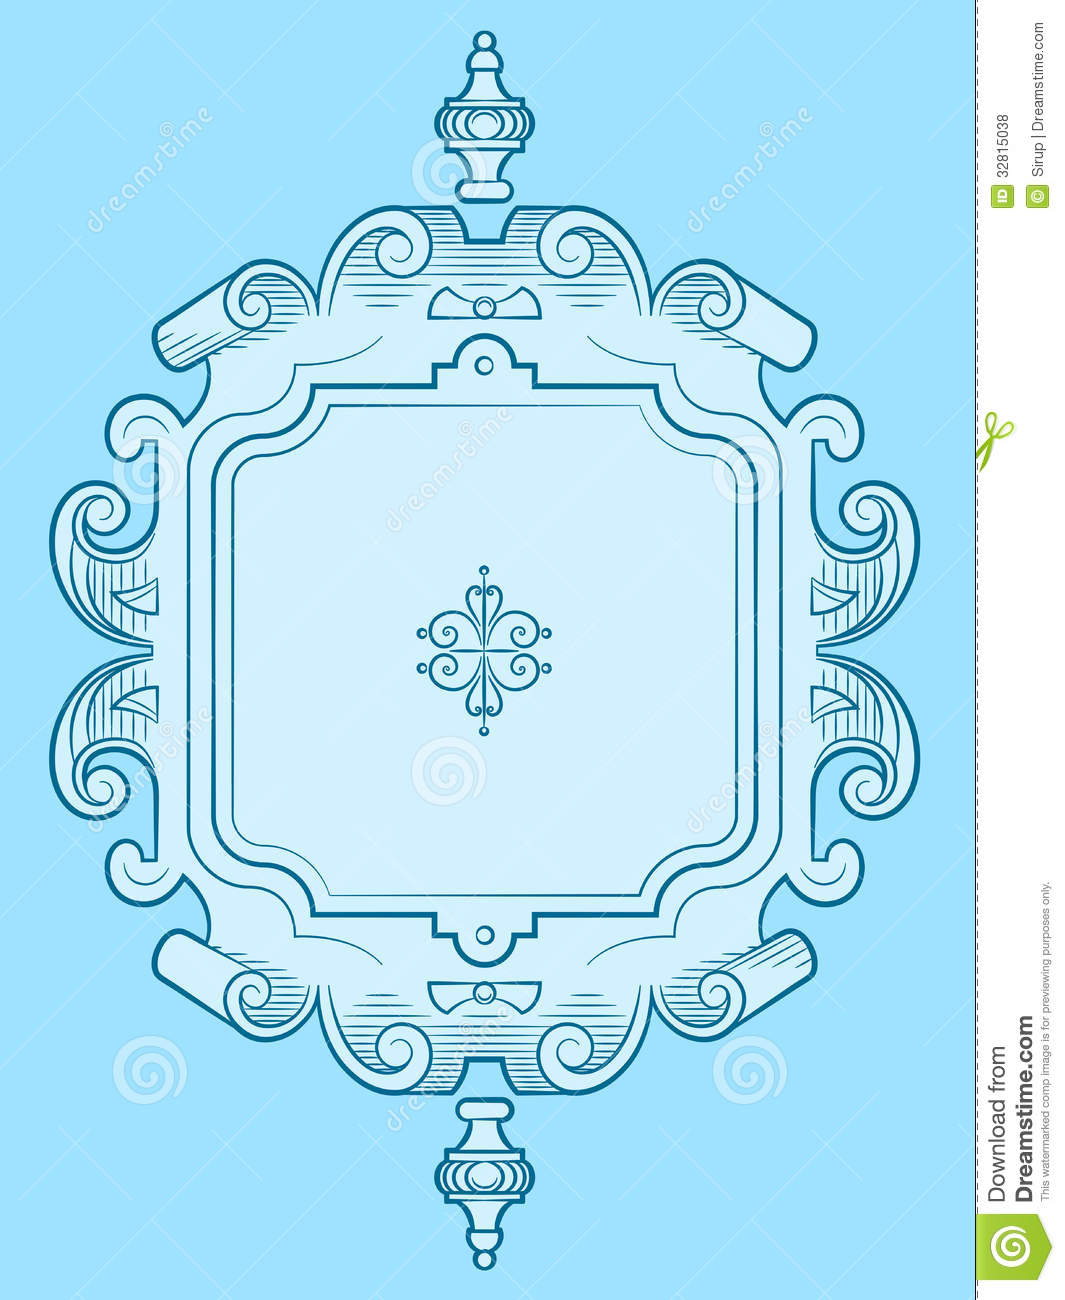 14 baroque design elements images baroque design element for Baroque design elements